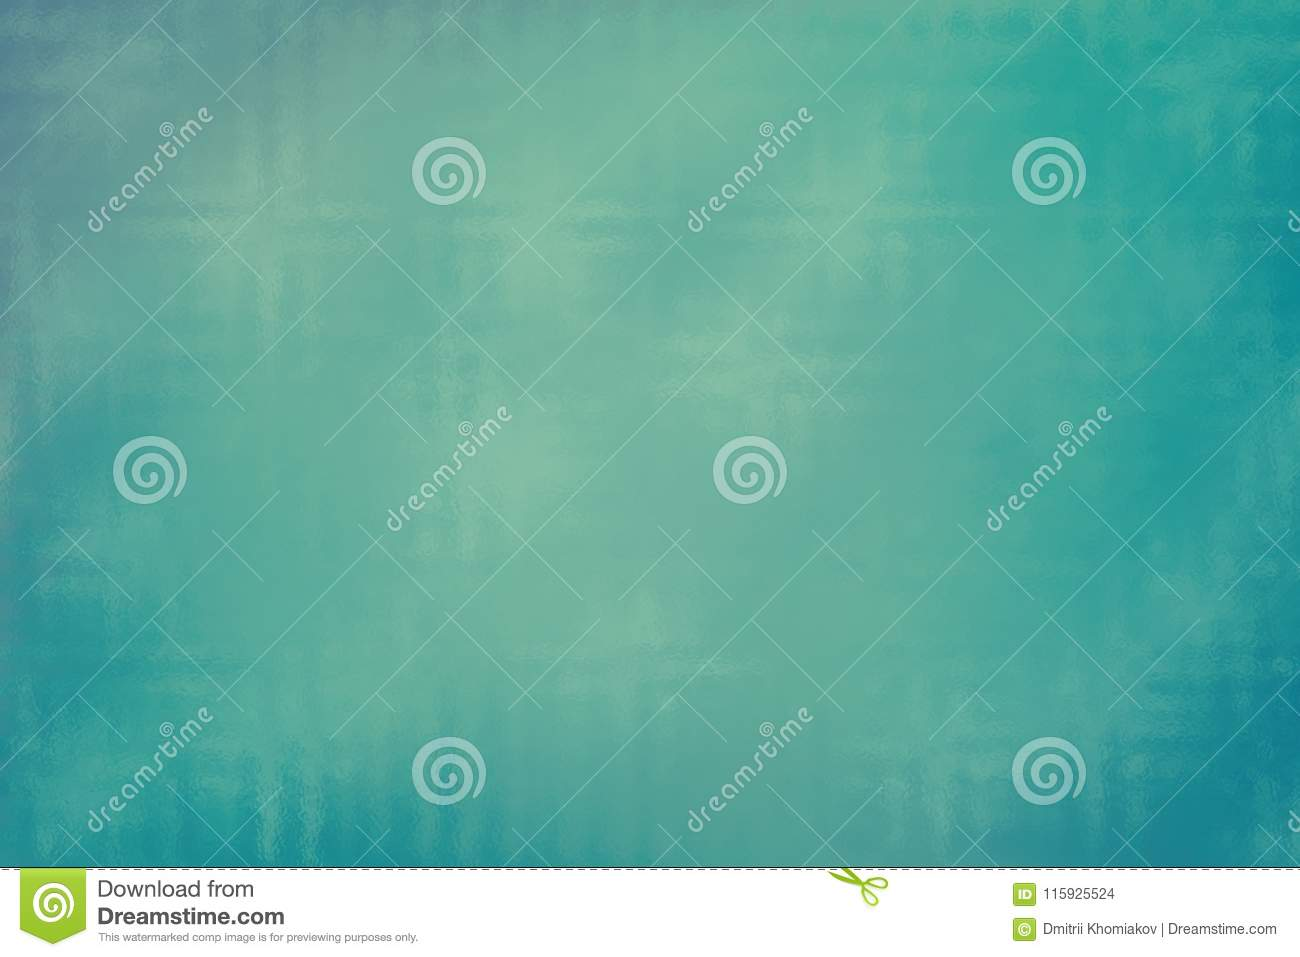 a6ef4bc969c Teal Abstract Glass Texture Background Or Wallpaper